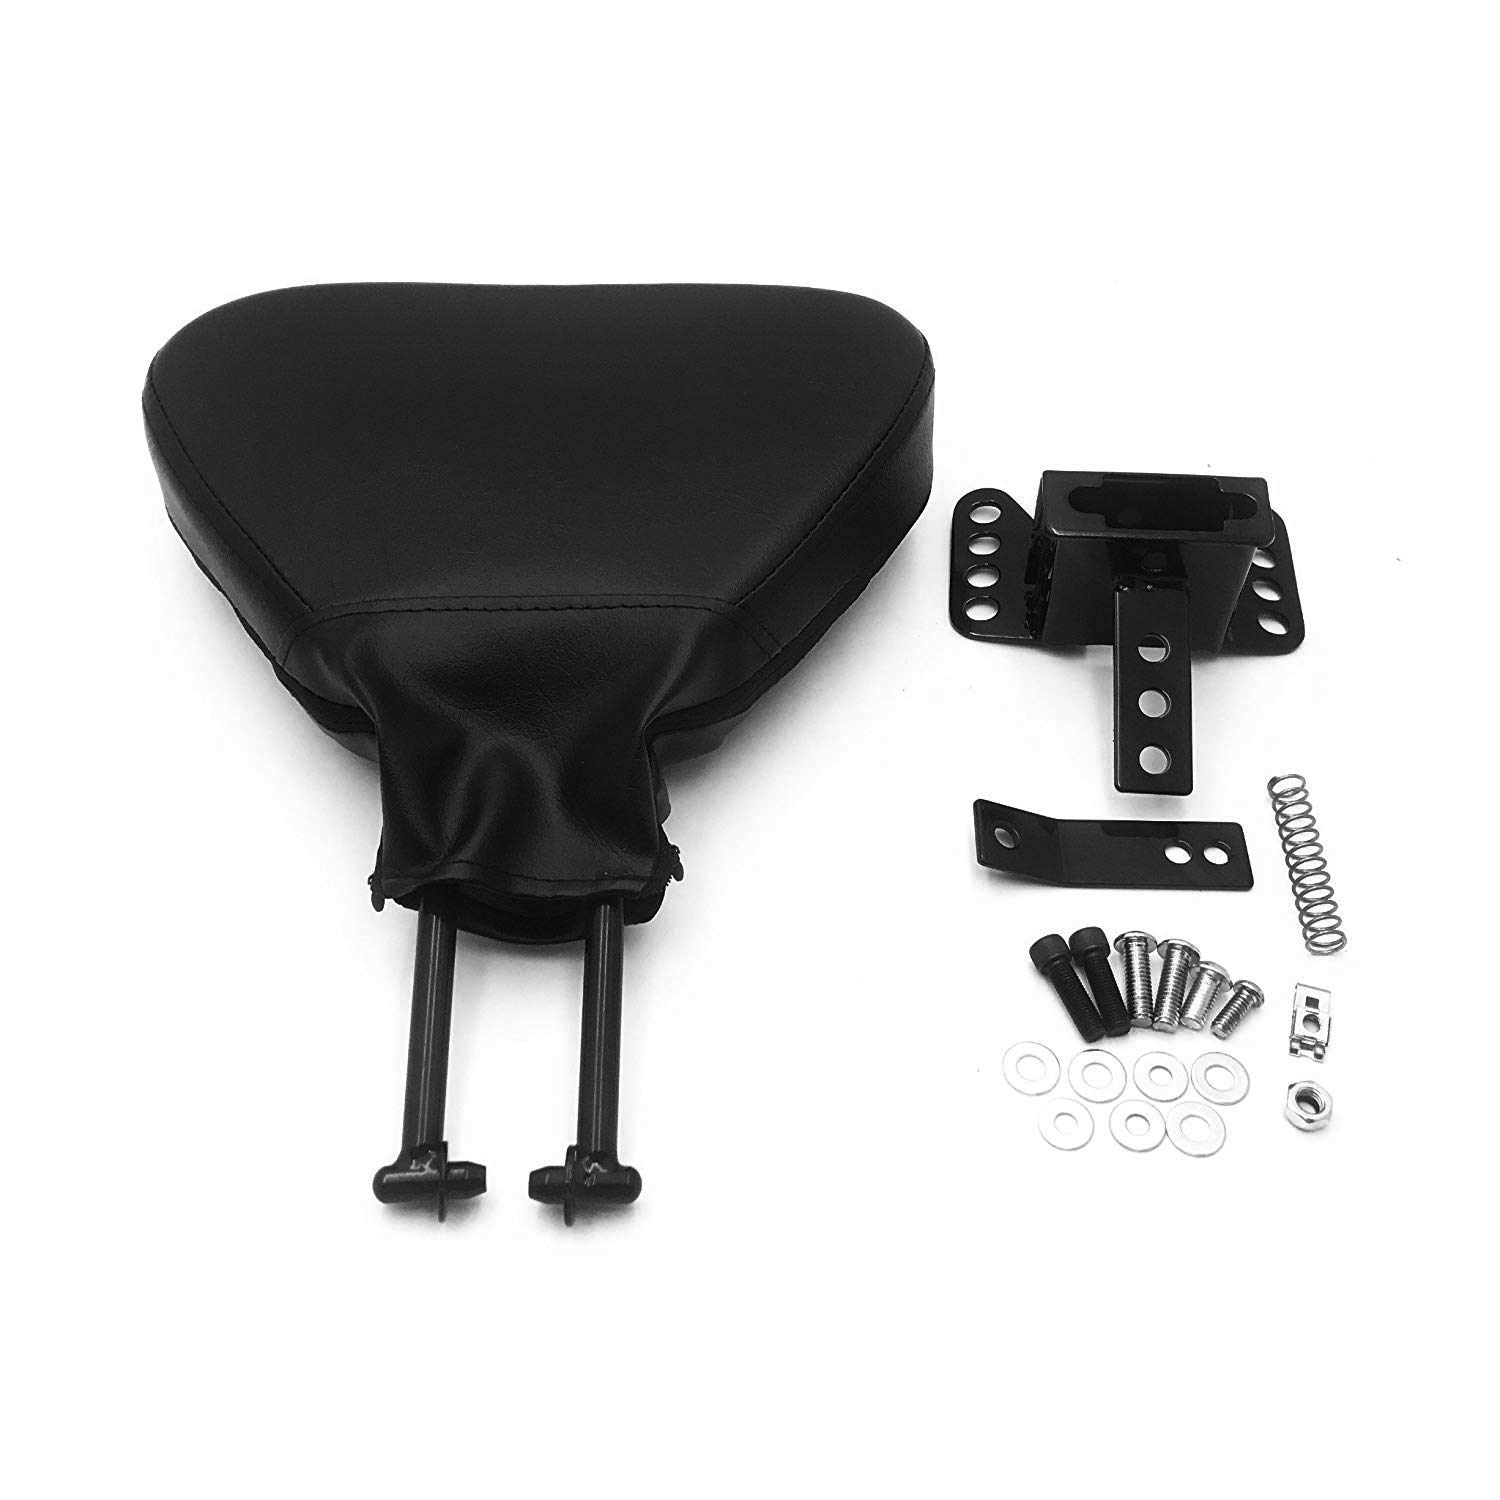 HTTMT MT501-005-03-S Motorcycle Gloss Black Sissy Bar Backrest Pad Mount Kit w//Skull Plate Compatible with 09-17 Harley Touring